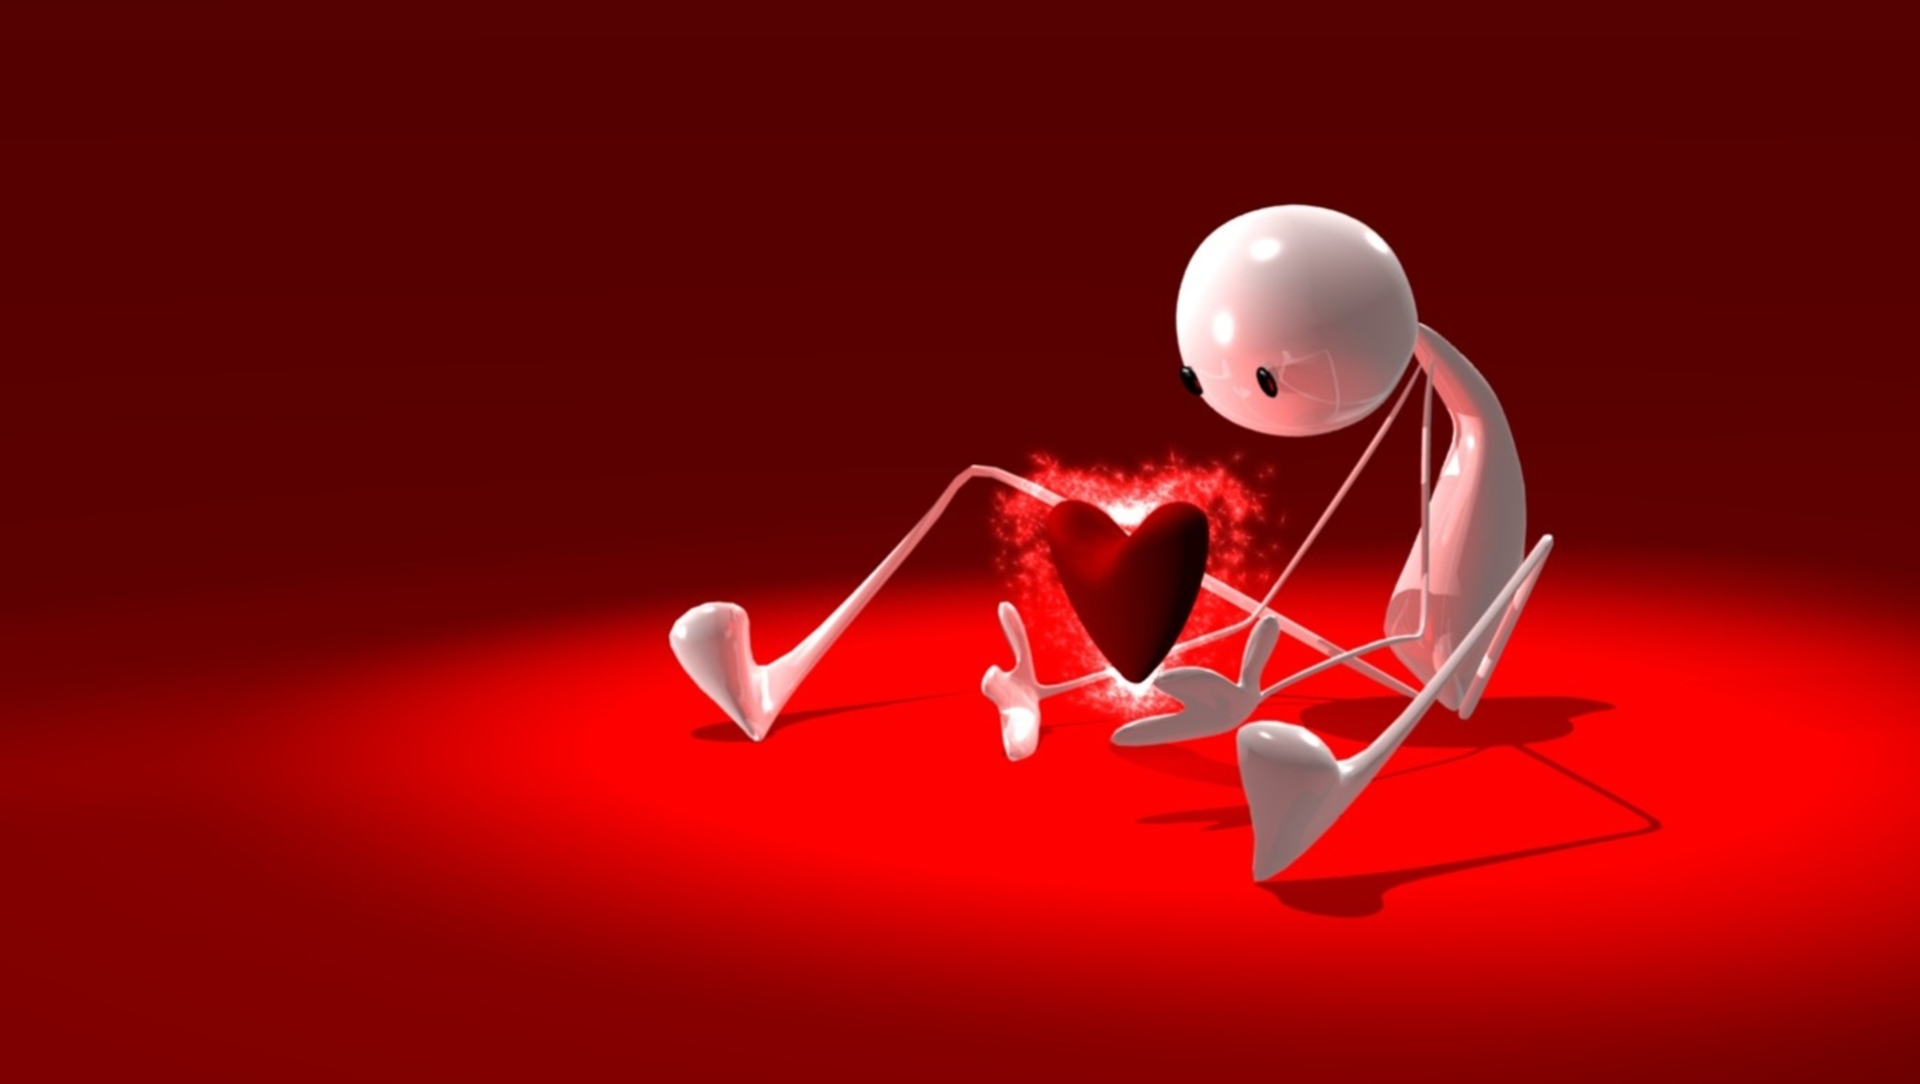 3d Love Wallpaper For Pc : 3D Animated Love Images 3 Desktop Wallpaper - Hdlovewall.com